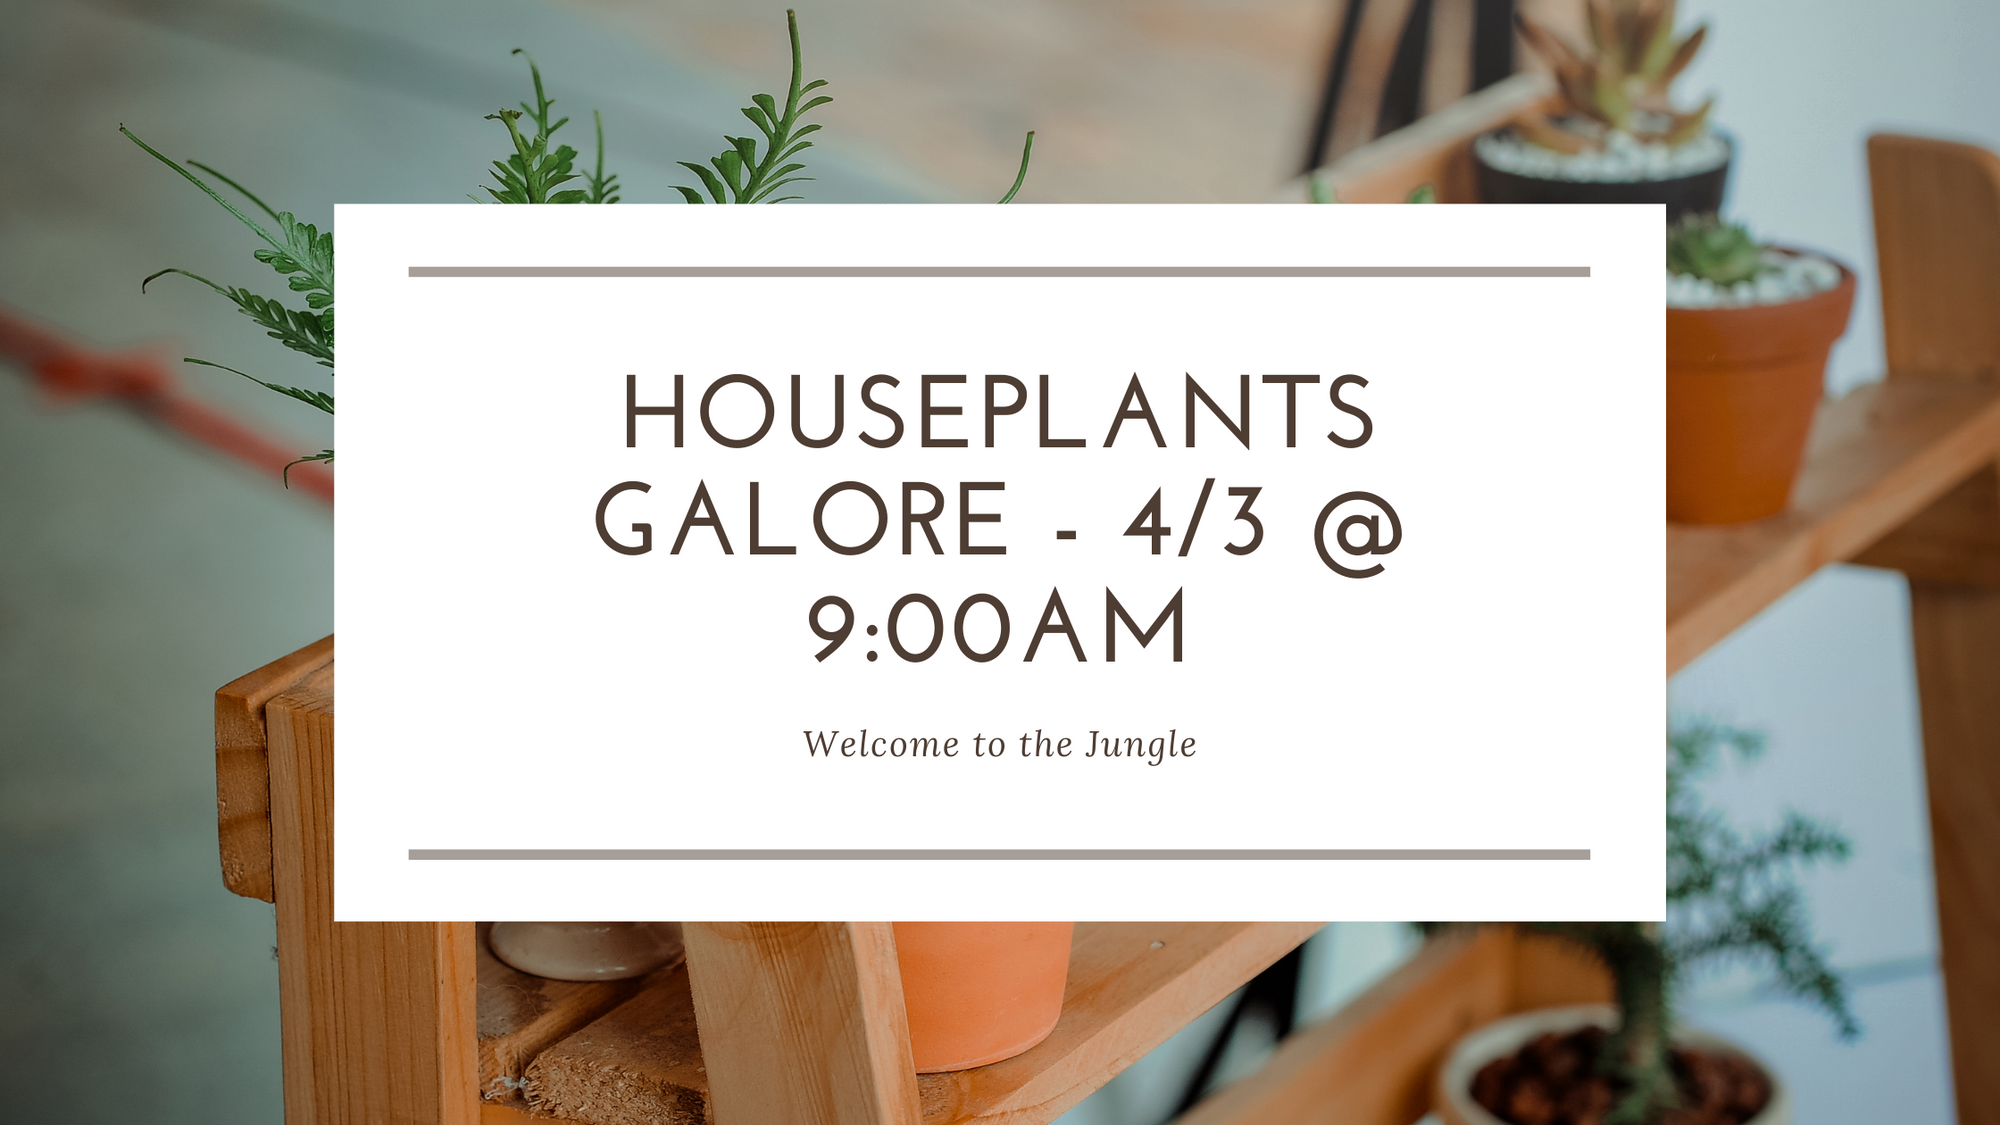 Houseplants Galore! - Spring 2021